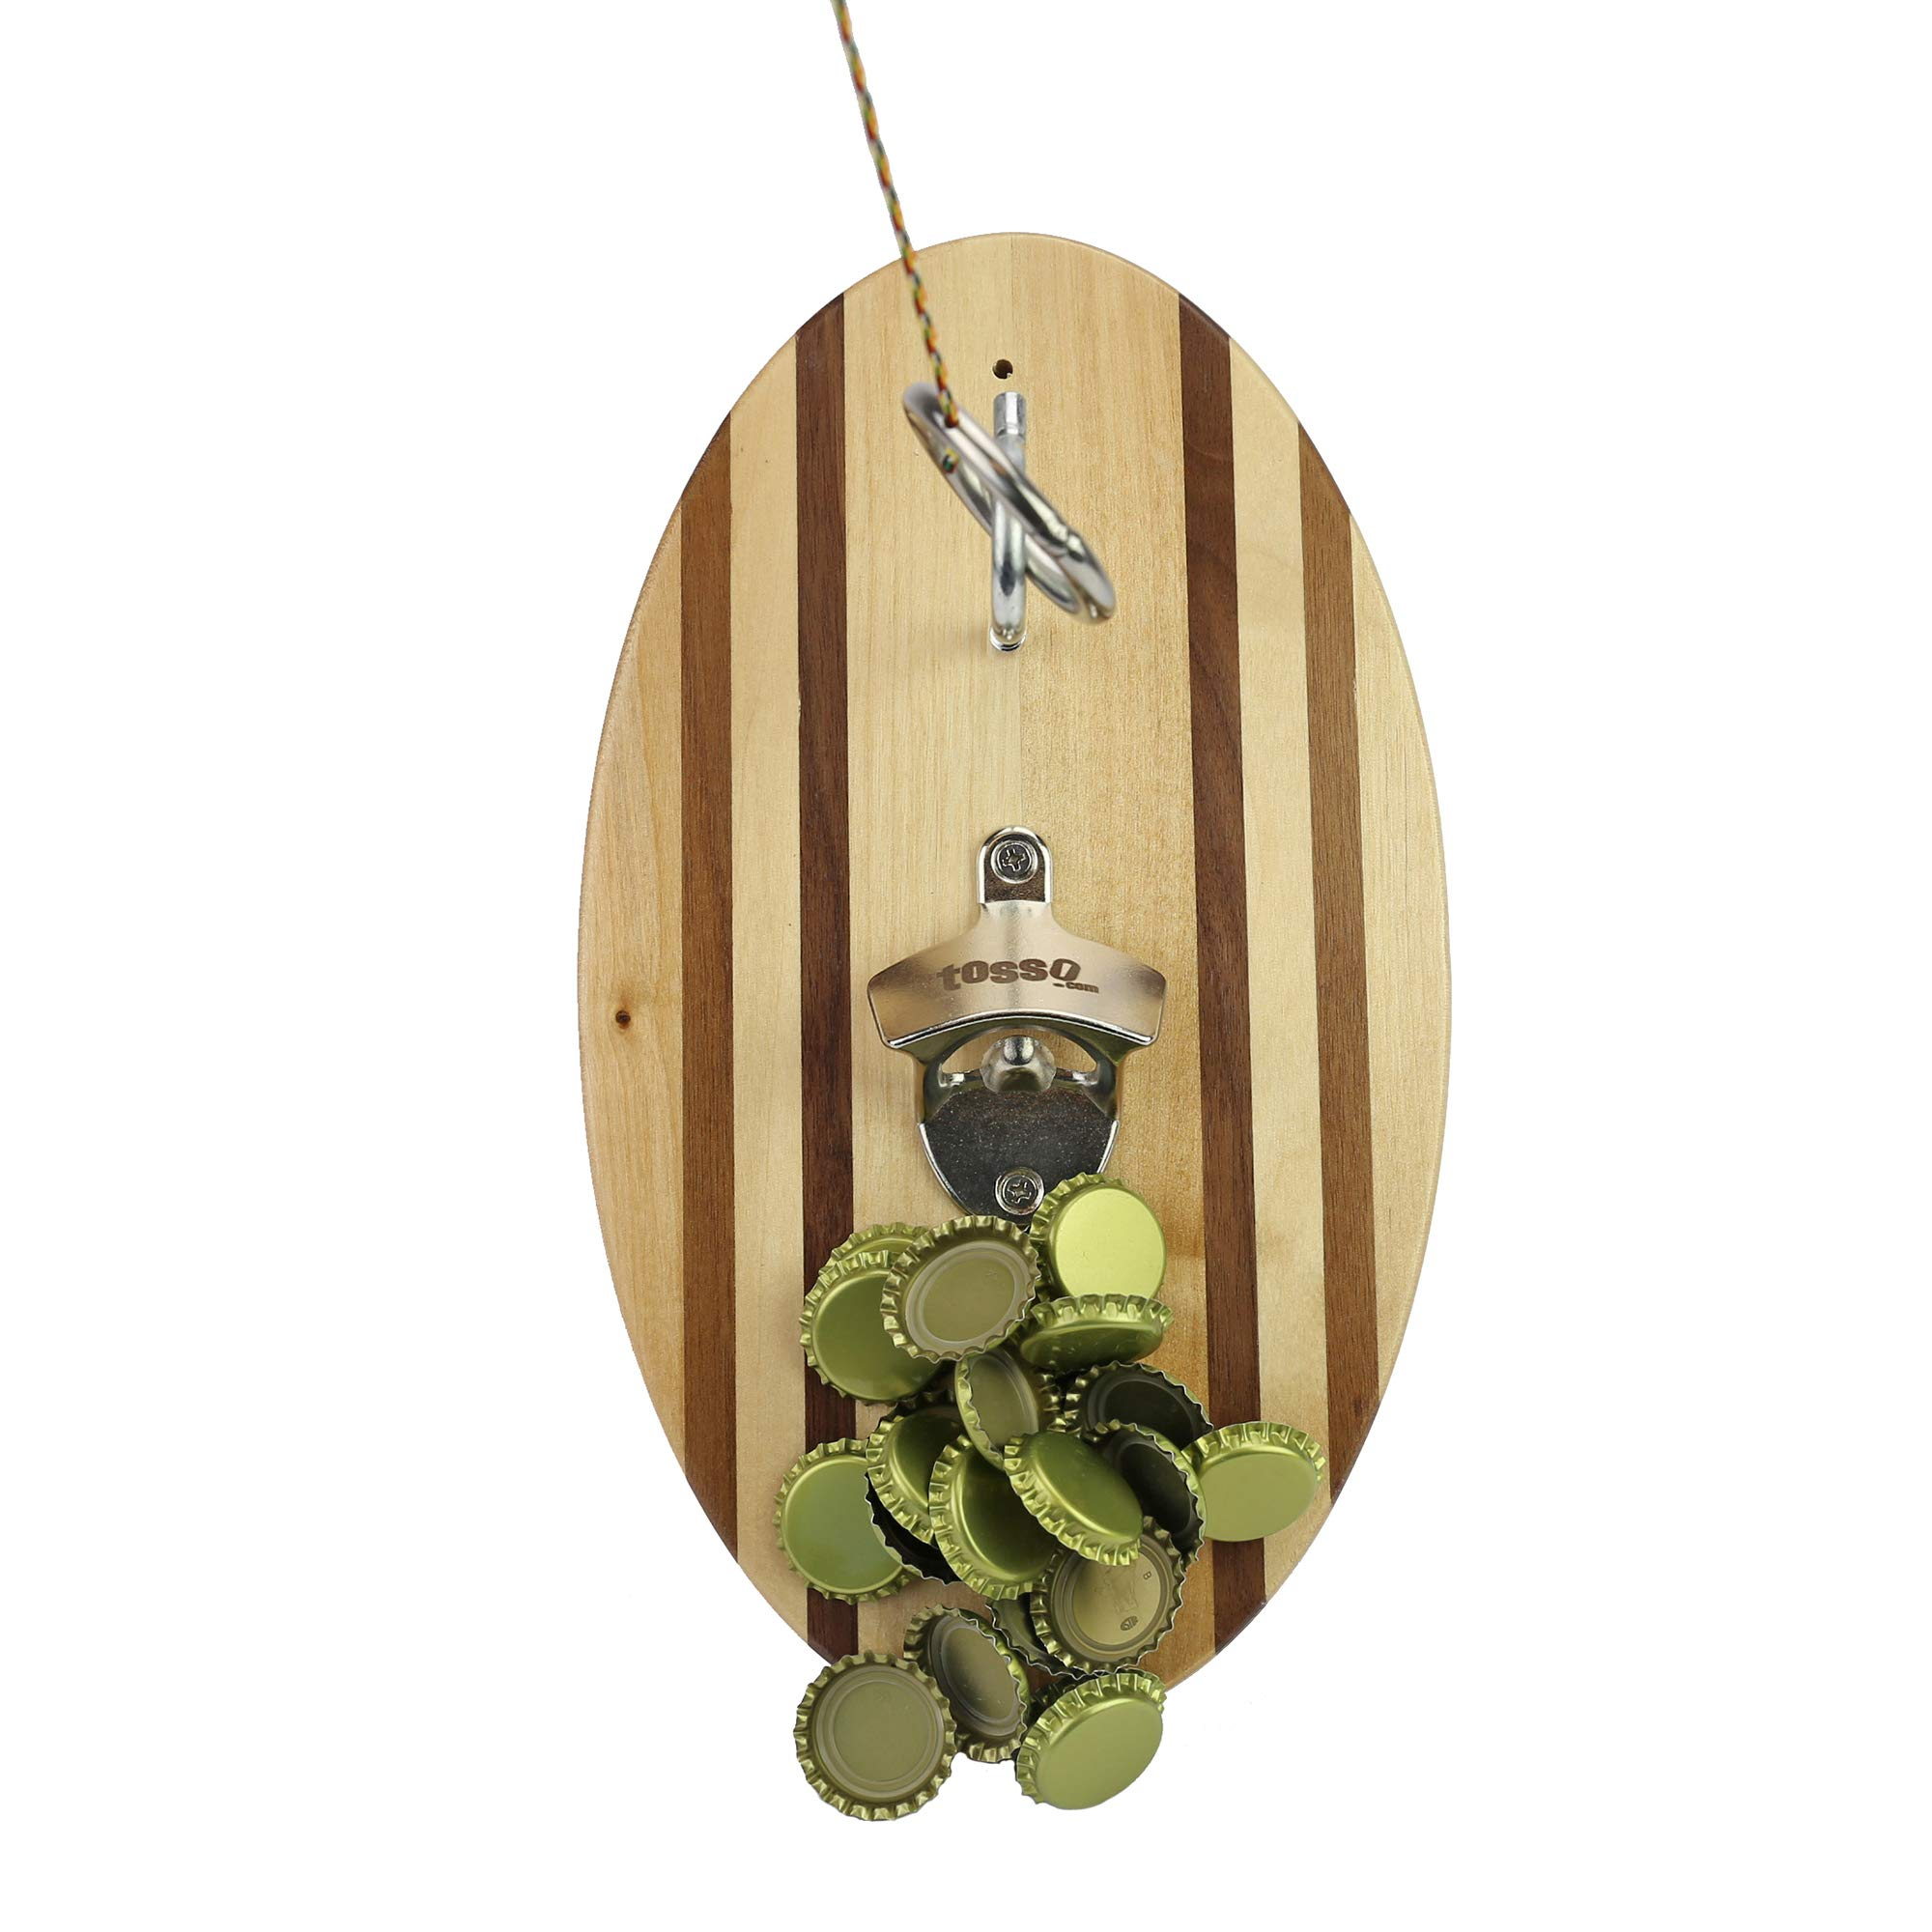 Hammer Crown Hook and Ring Pro (Beach Stripes) with Bottle Opener and Magnetic Bottle Cap Catch by Hammer Crown